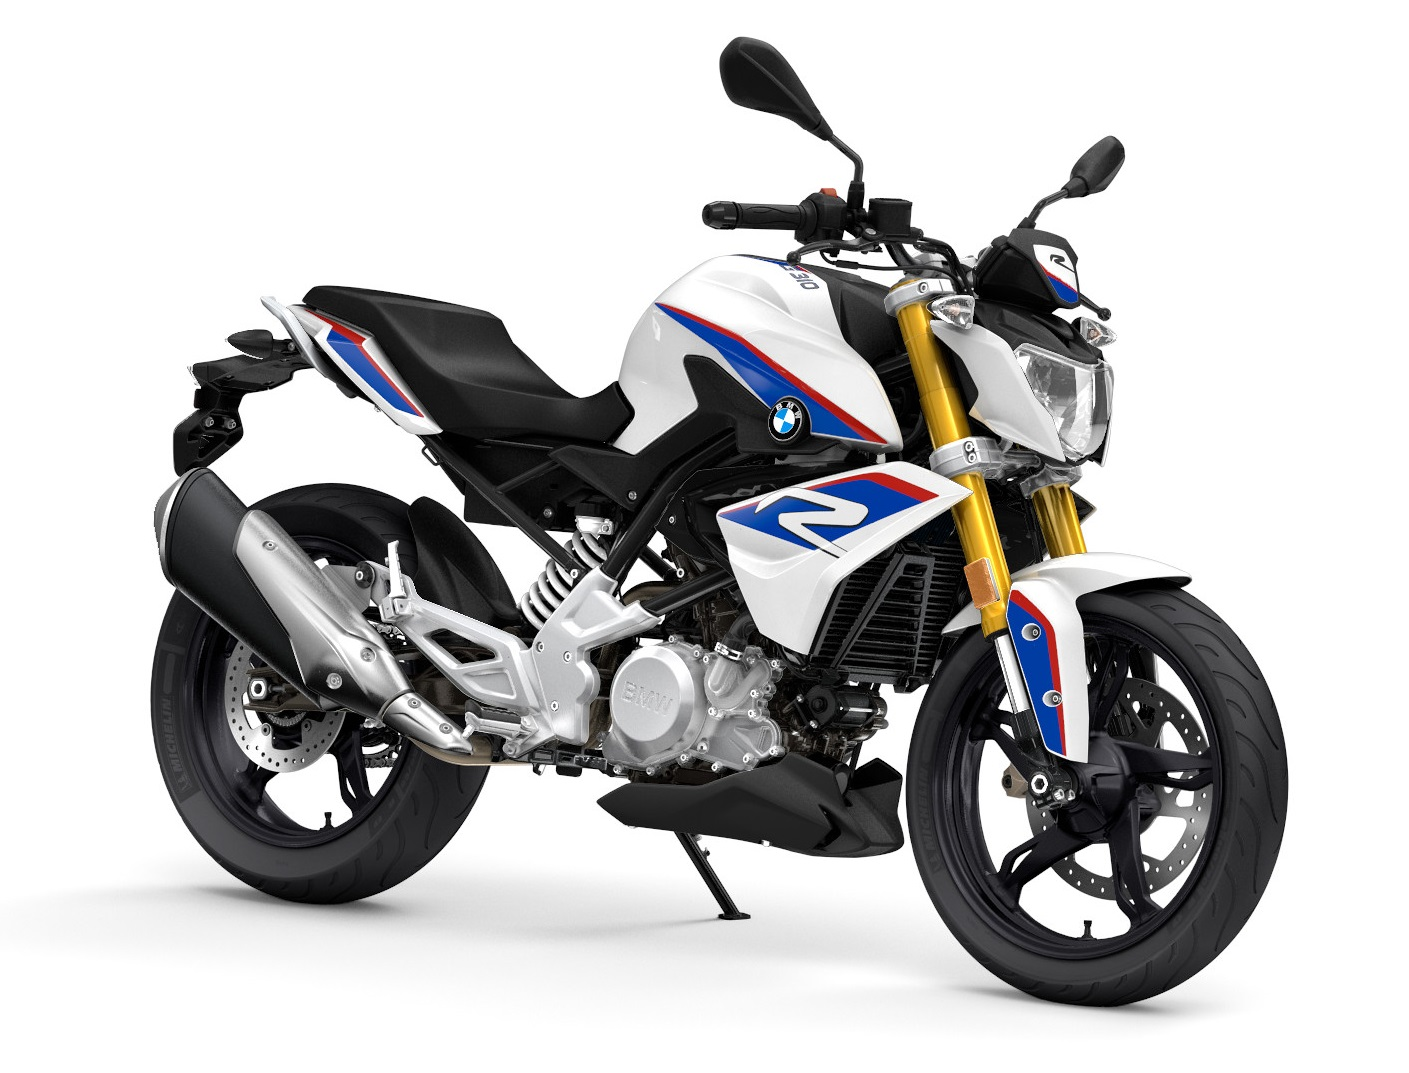 Bmw G310r Price Why It Should Be Under Duke 390 Reasons